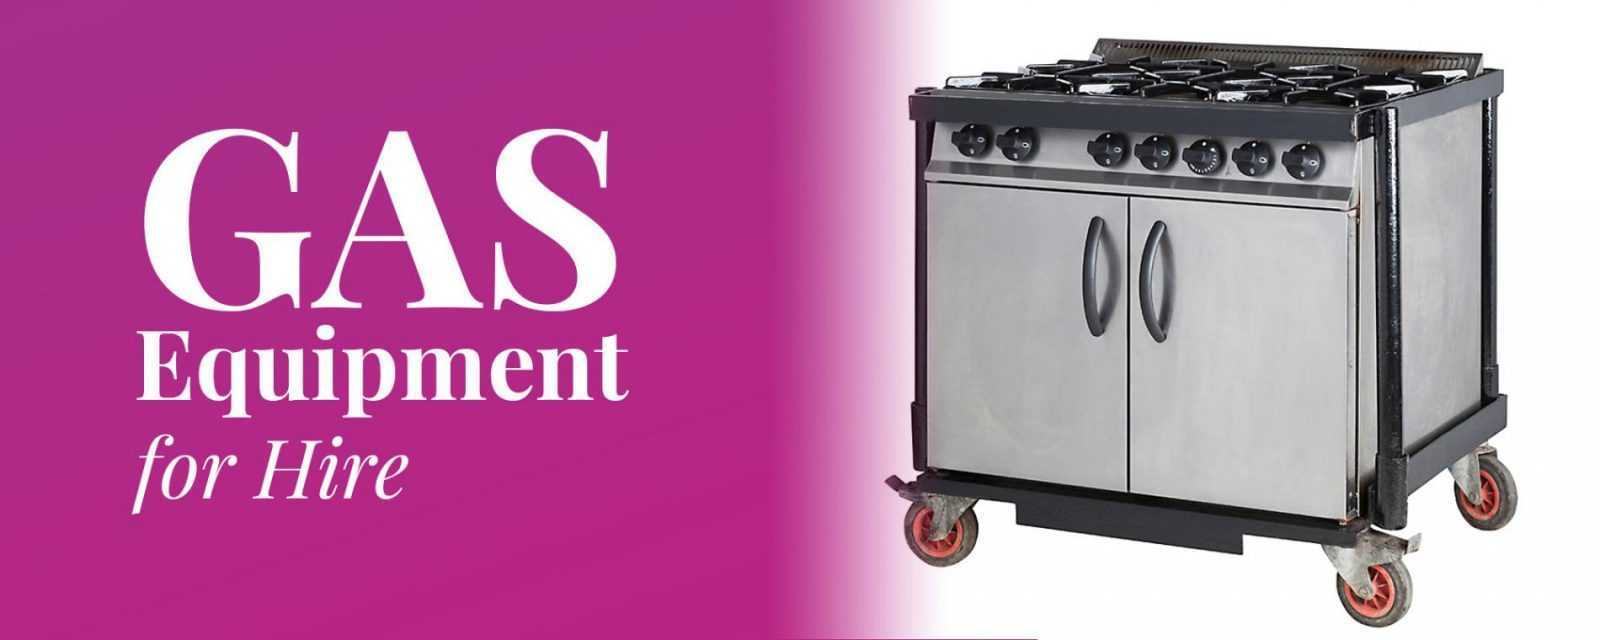 Gas Equipment for Hire